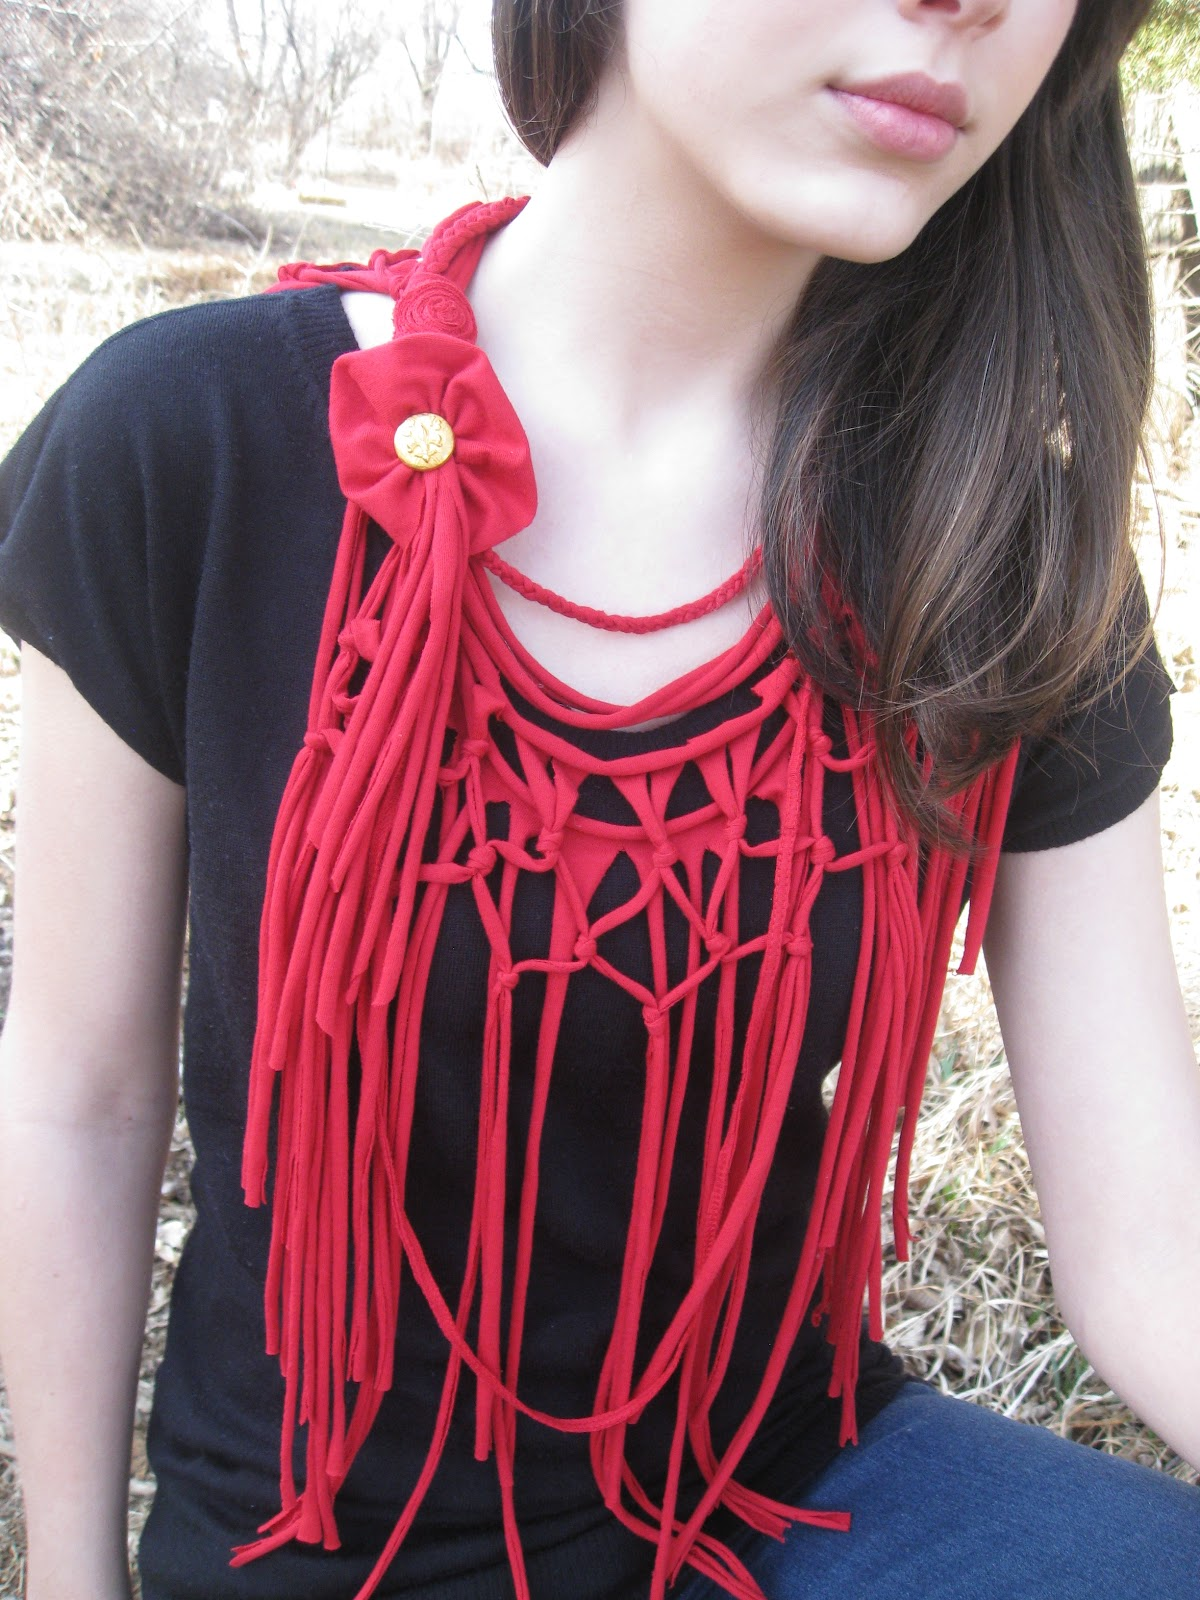 cuttlefish designs t shirt necklace scarf